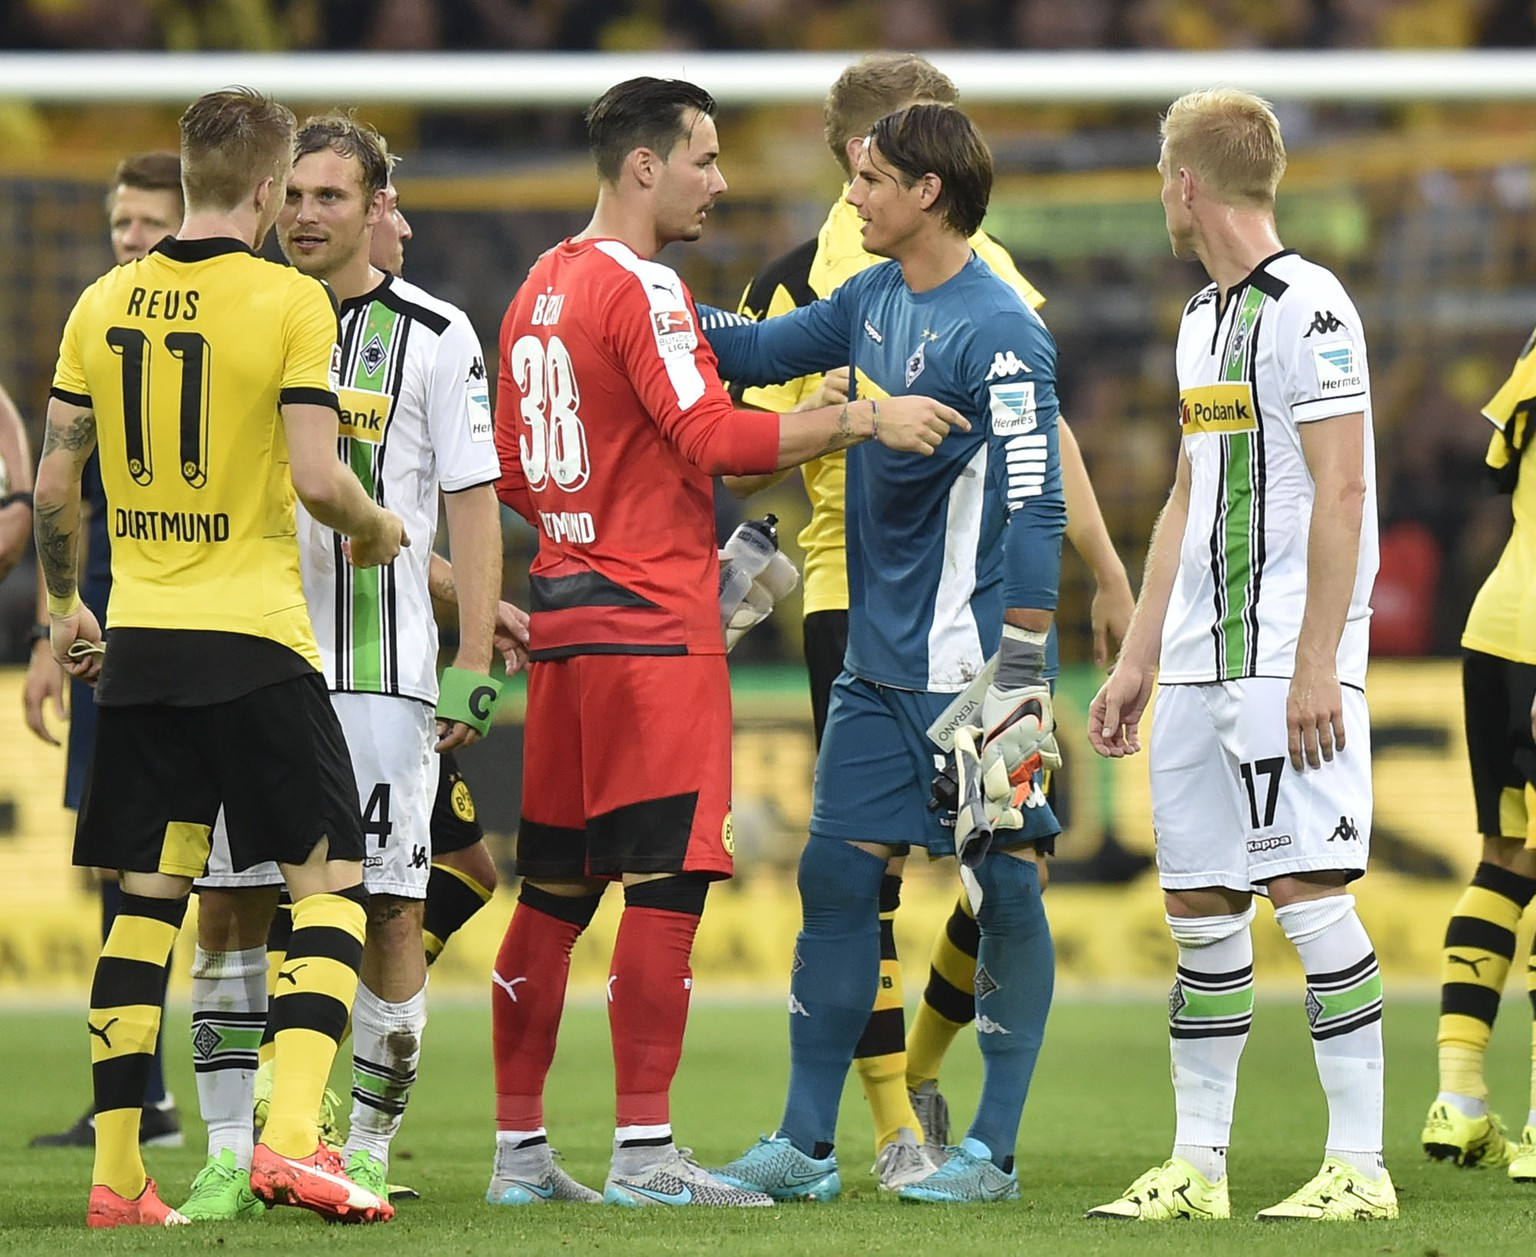 Swiss goalkeepers Roman Buerki of Dortmund, left, and Yann Sommer of Moenchengladbach, right, talk after the German Bundesliga soccer match between Borussia Dortmund and Borussia Moenchengladbach in Dortmund, Germany, Saturday, Aug. 15, 2015. Dortmund defeated Moenchengladbach  4-0. (AP Photo/Martin Meissner)